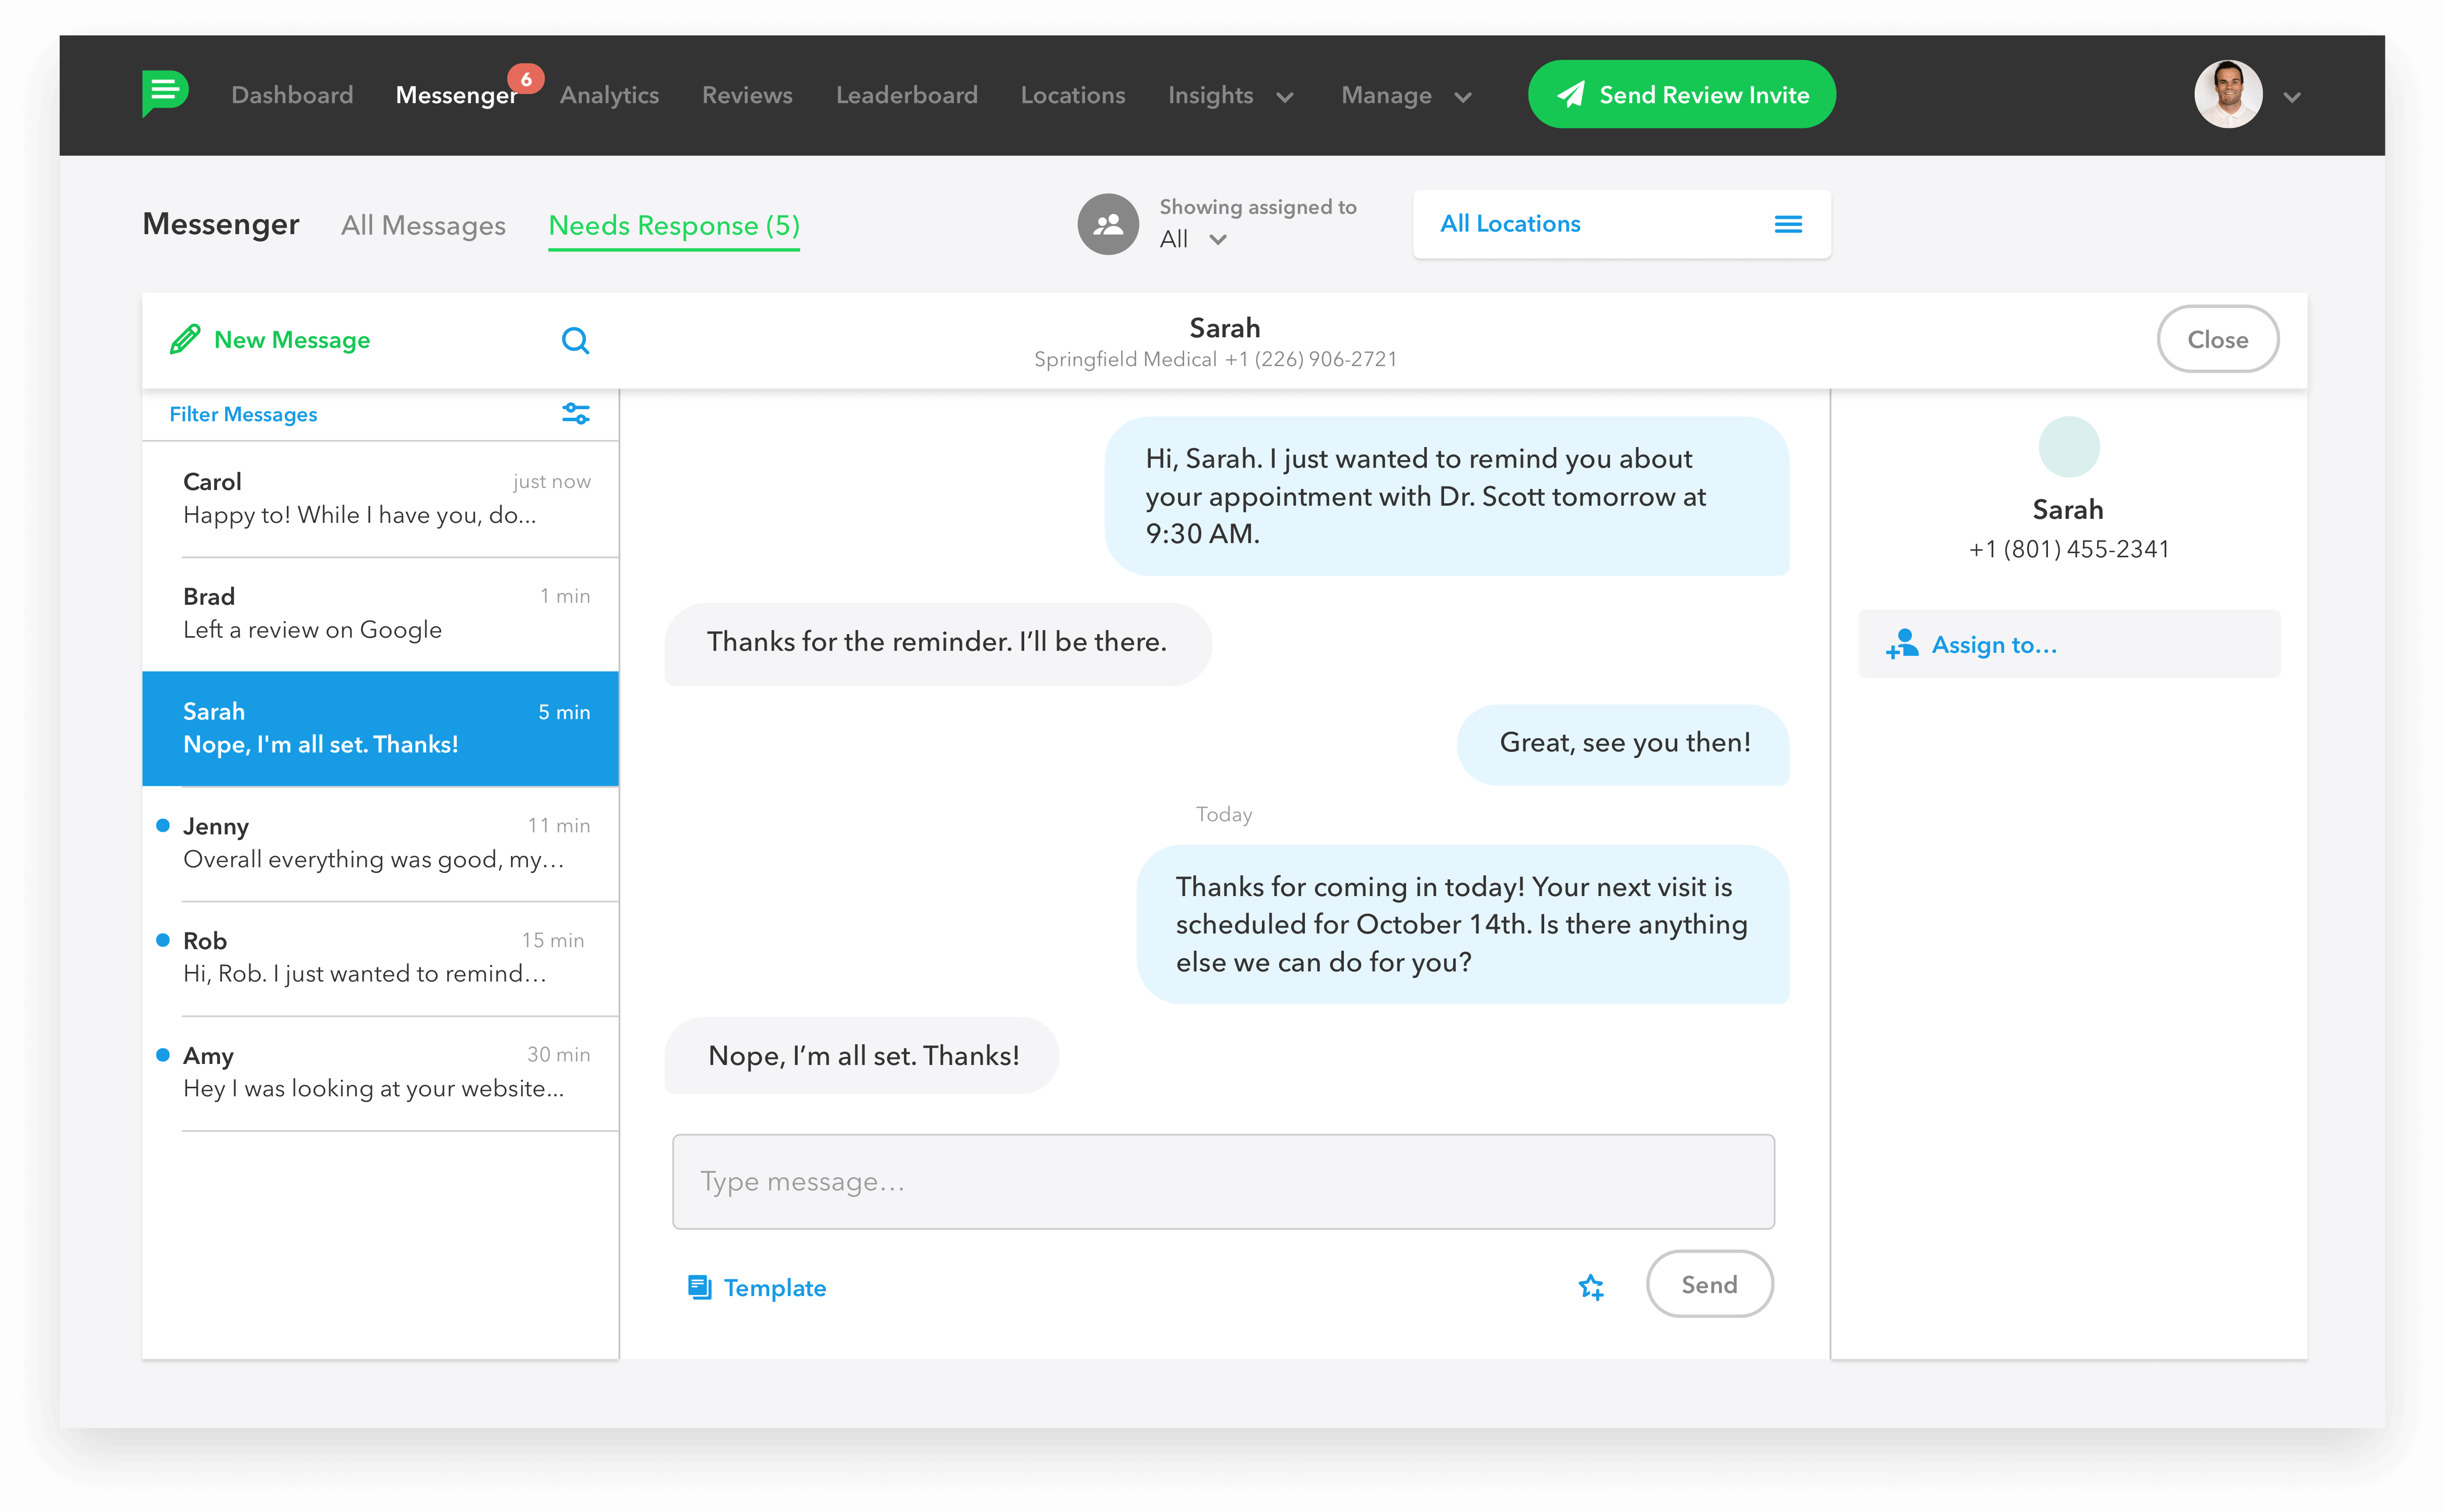 MessagingPlatform